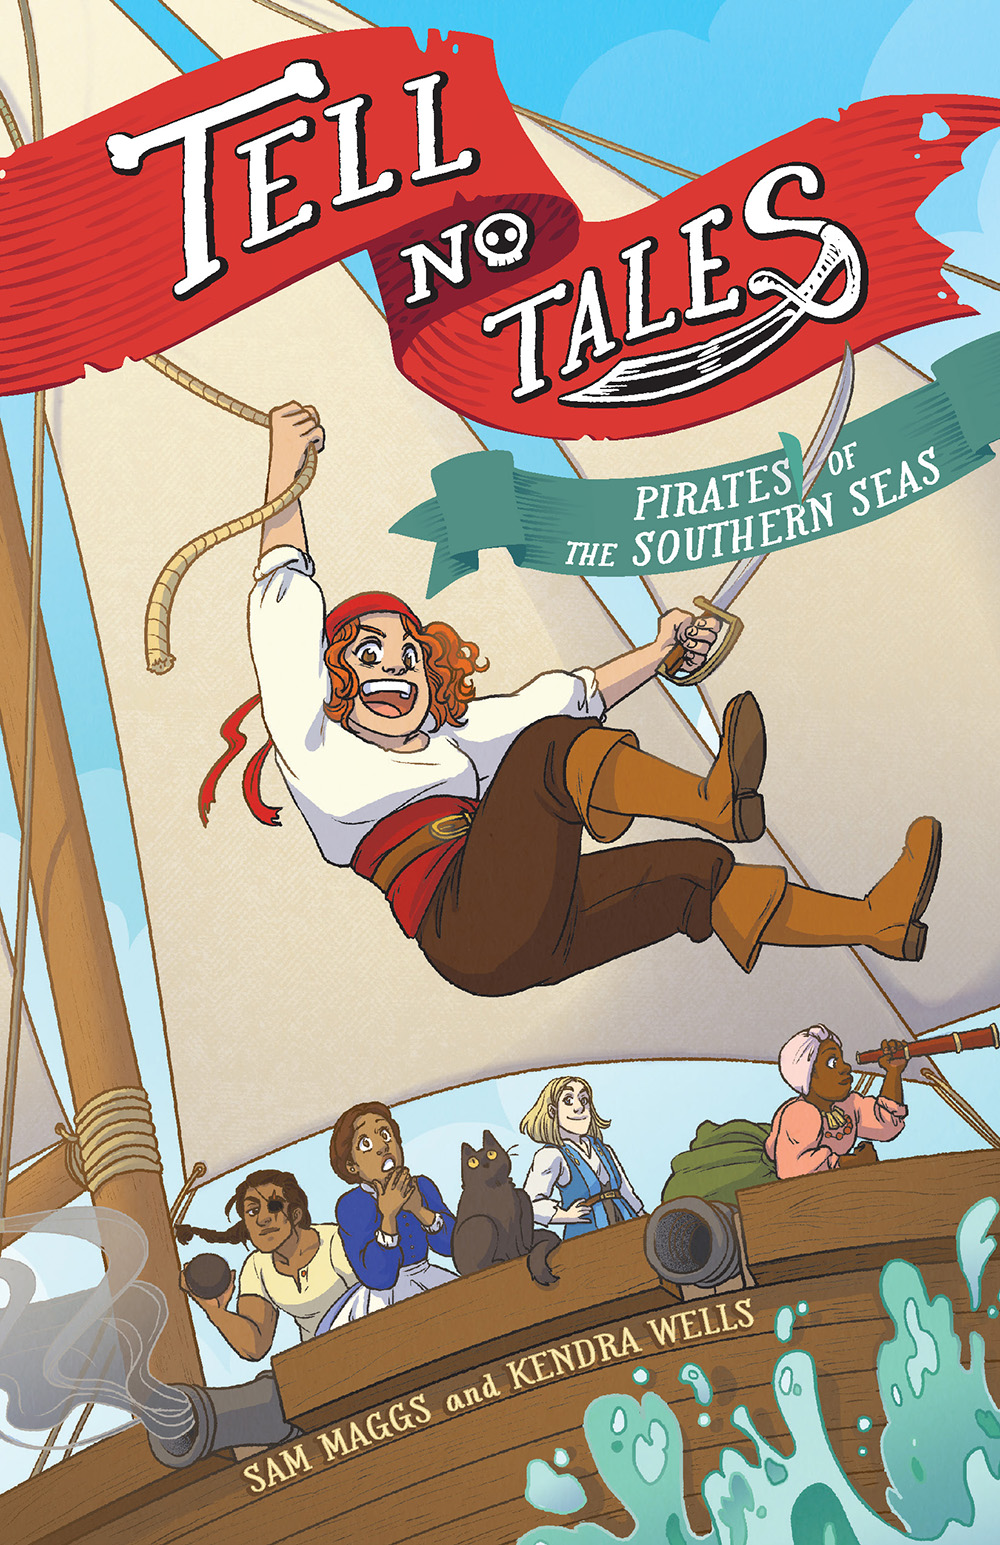 Tell No Tales: Pirates of the Southern Seas by Sam Maggs